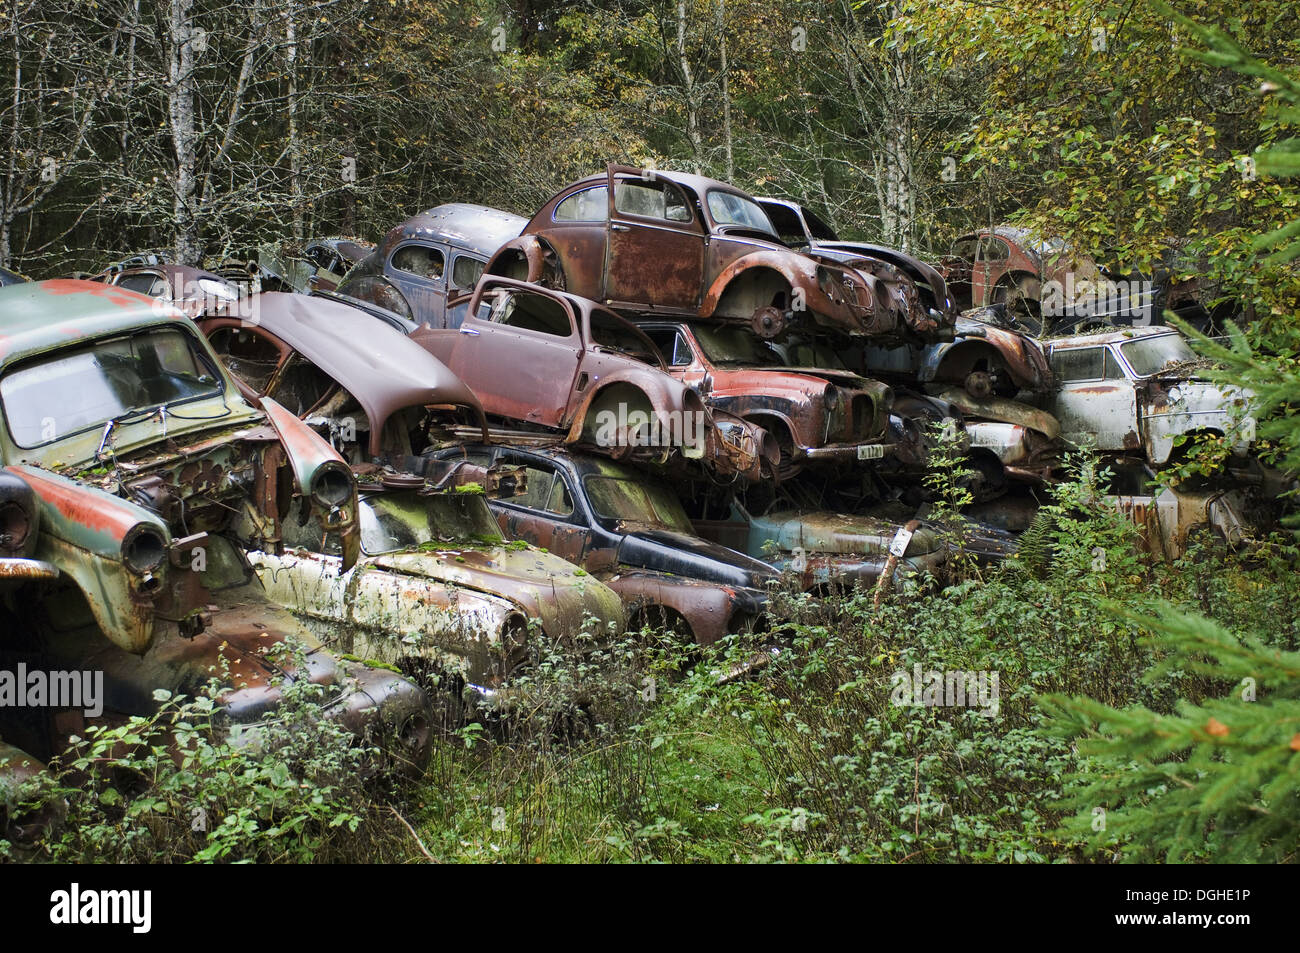 Pile of scrap cars in forest, Sweden Stock Photo